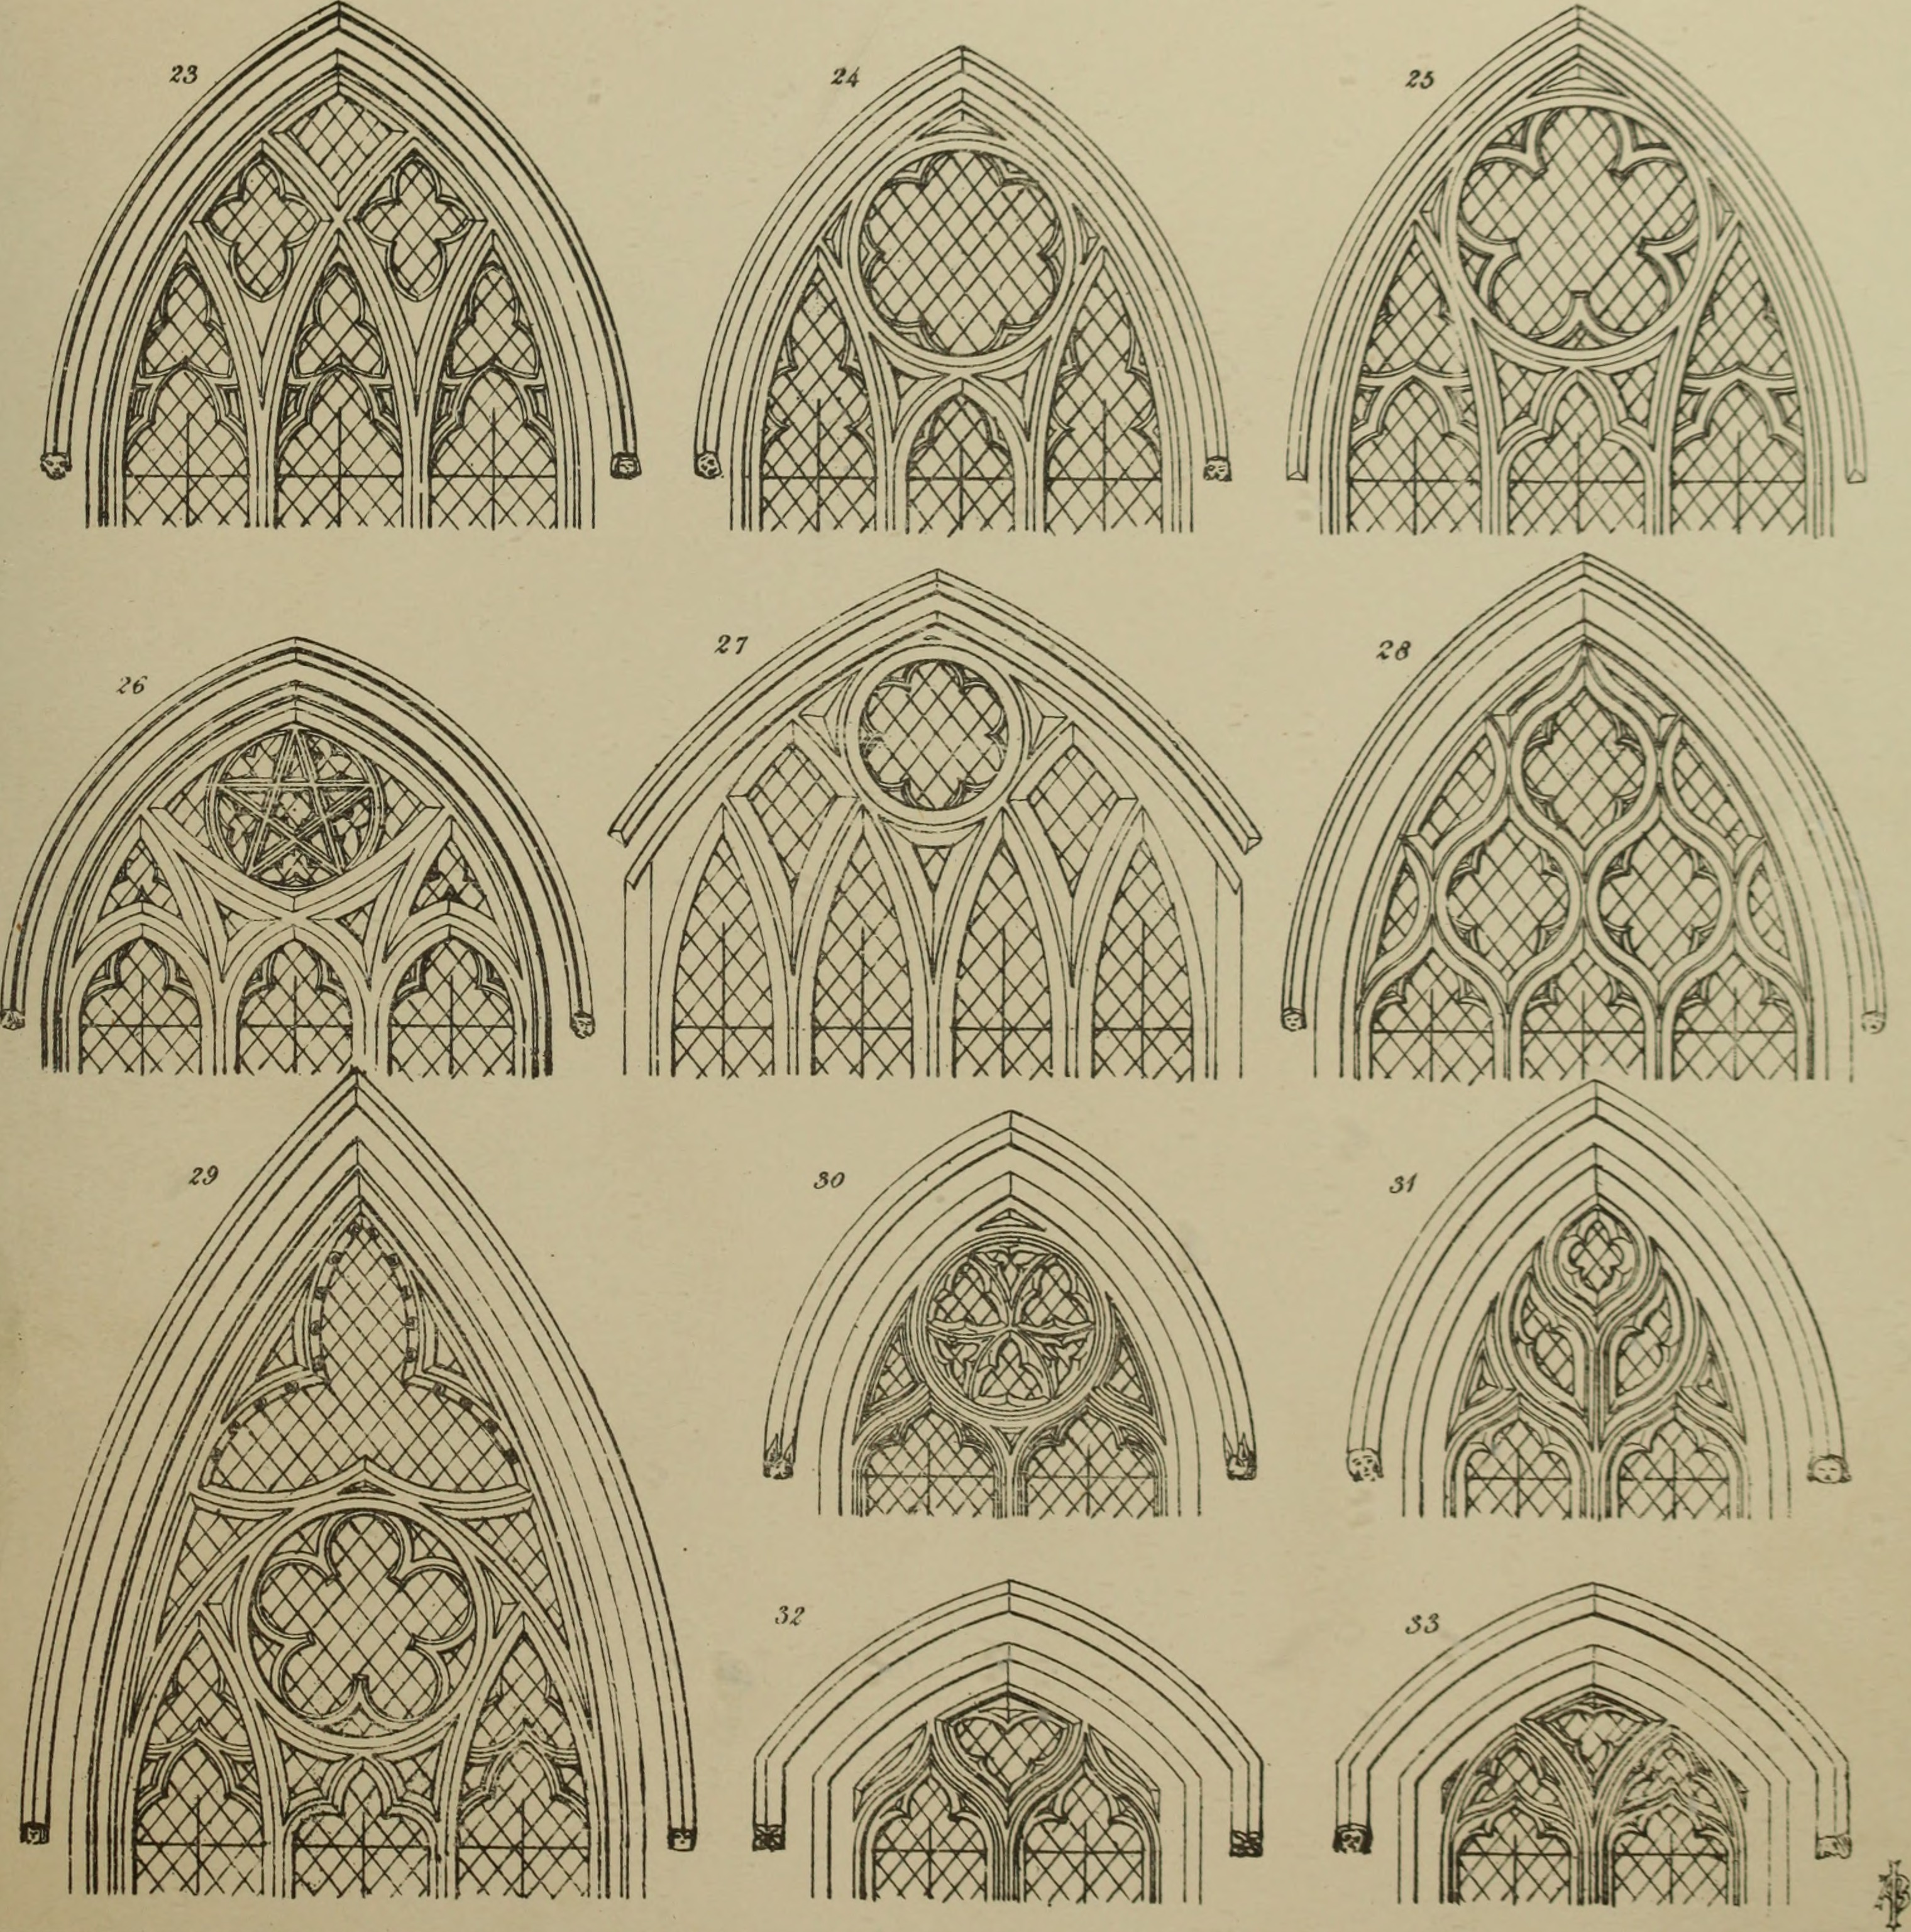 an analysis of gothic style in architecture Also referred to as carpenter gothic, this suburban style of home popular during the depression era was meant to mimic the lofty, vaulted gothic architecture of historic european cathedrals--though obviously at a price the working class could afford to buy and live in.